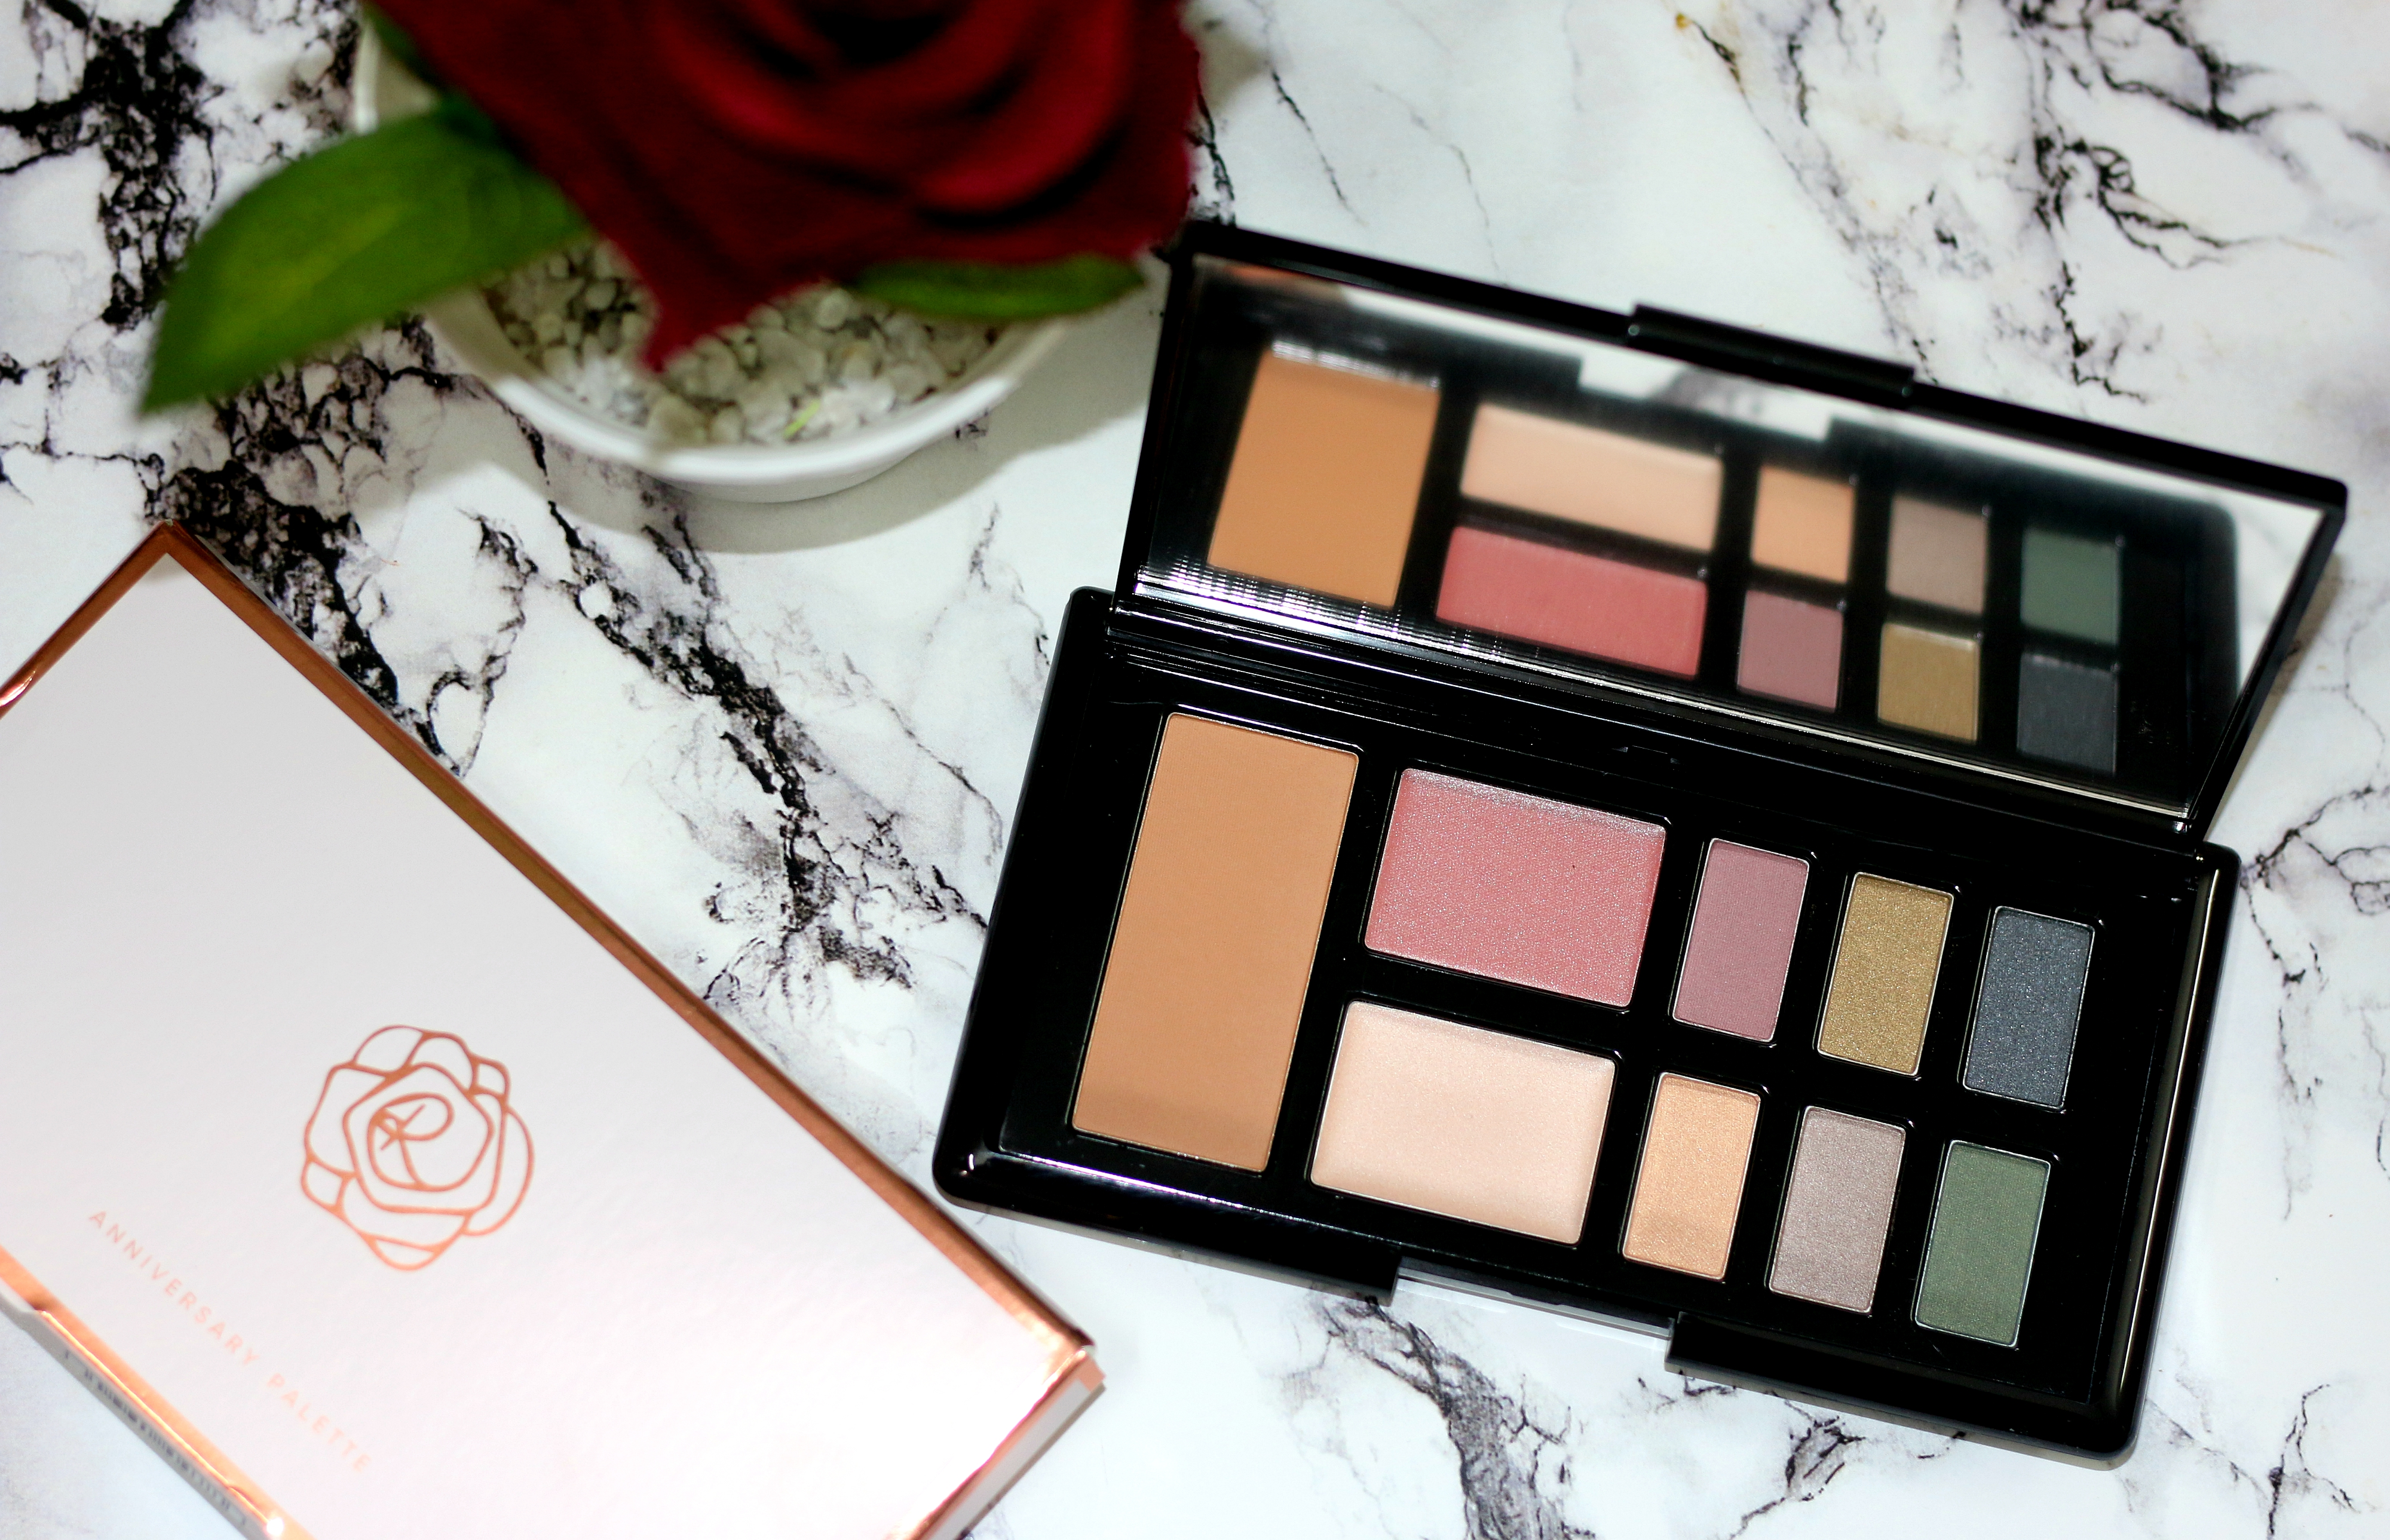 MARKS & SPENCERS ROSIE FOR AUTOGRAPH MAKEUP PALETTE | Review & Swatches